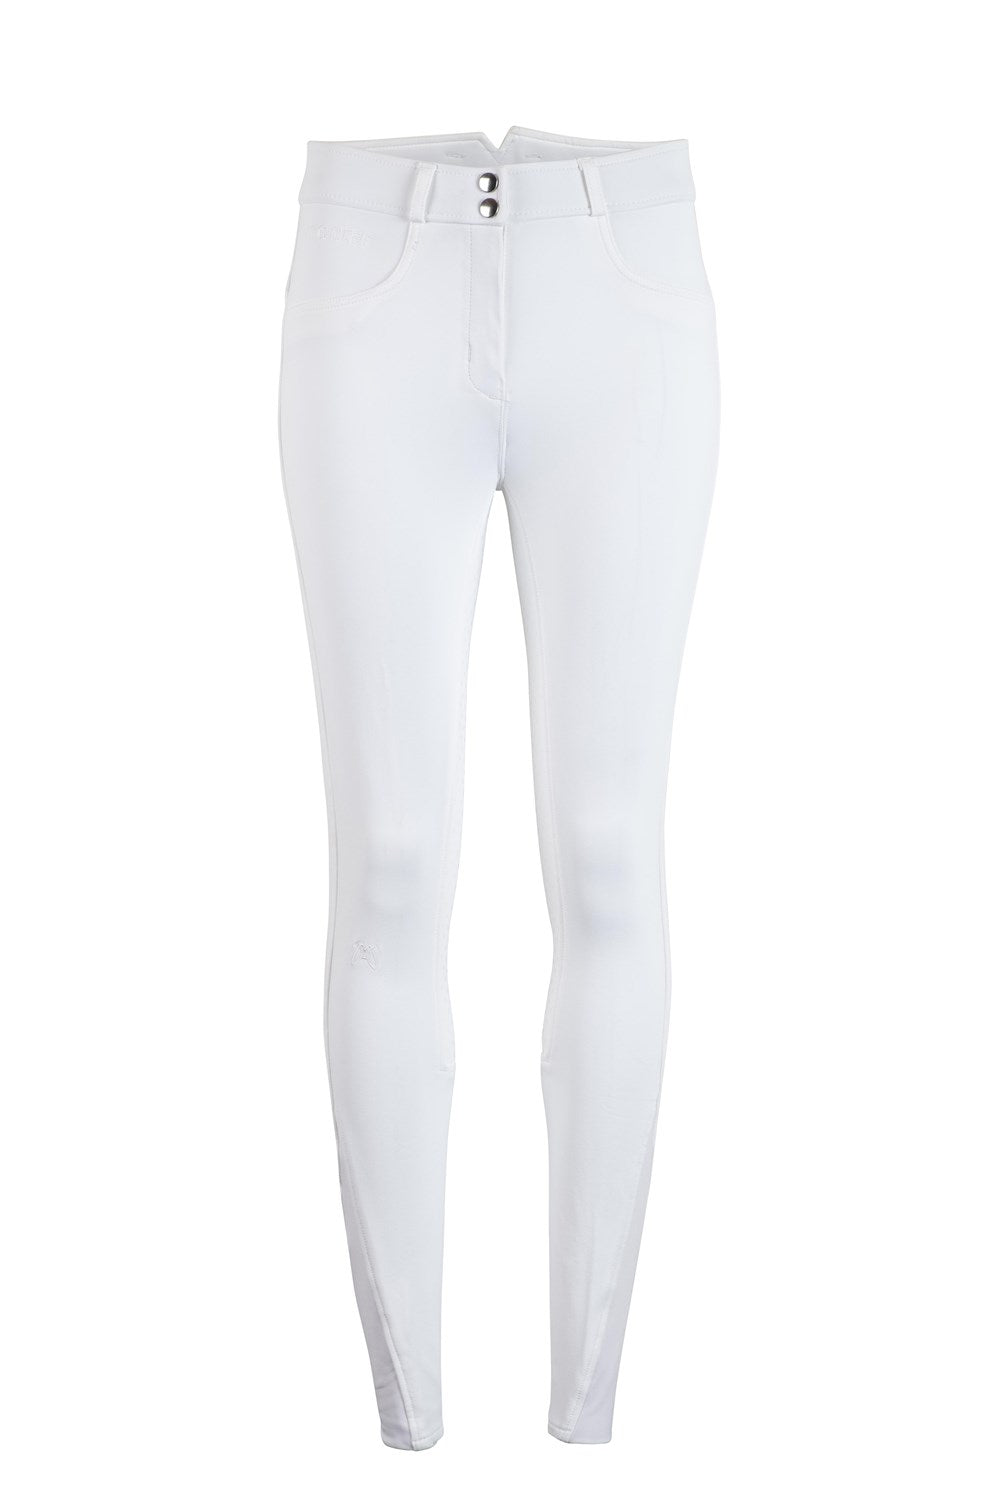 Montar ESS Highwaist Breech - White - The Dressage Store